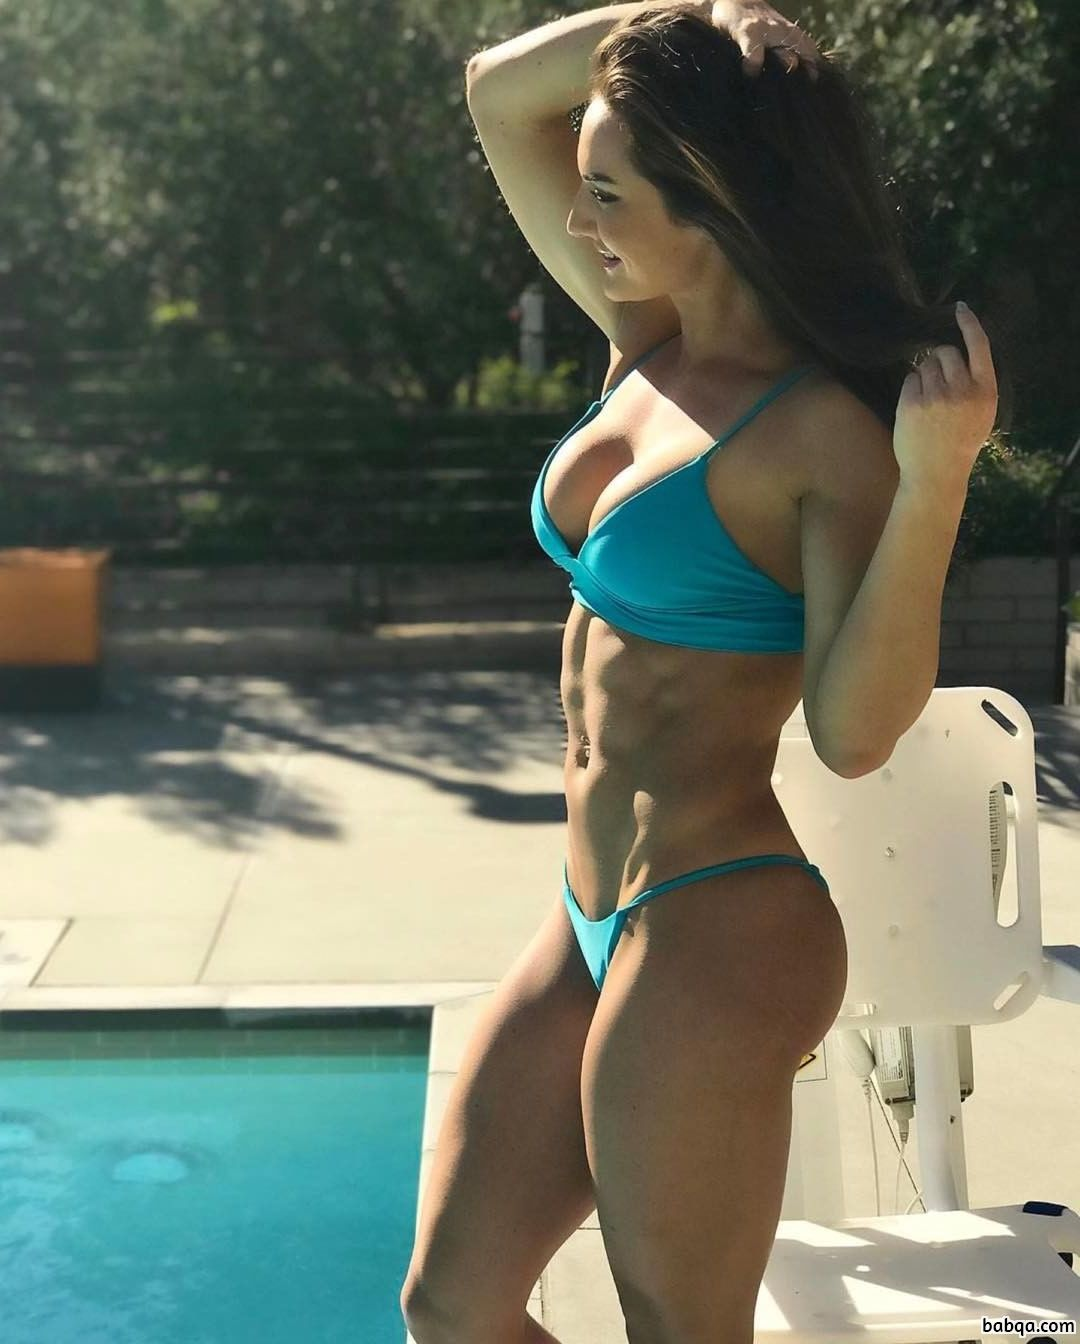 cute chick with fitness body and muscle booty photo from insta